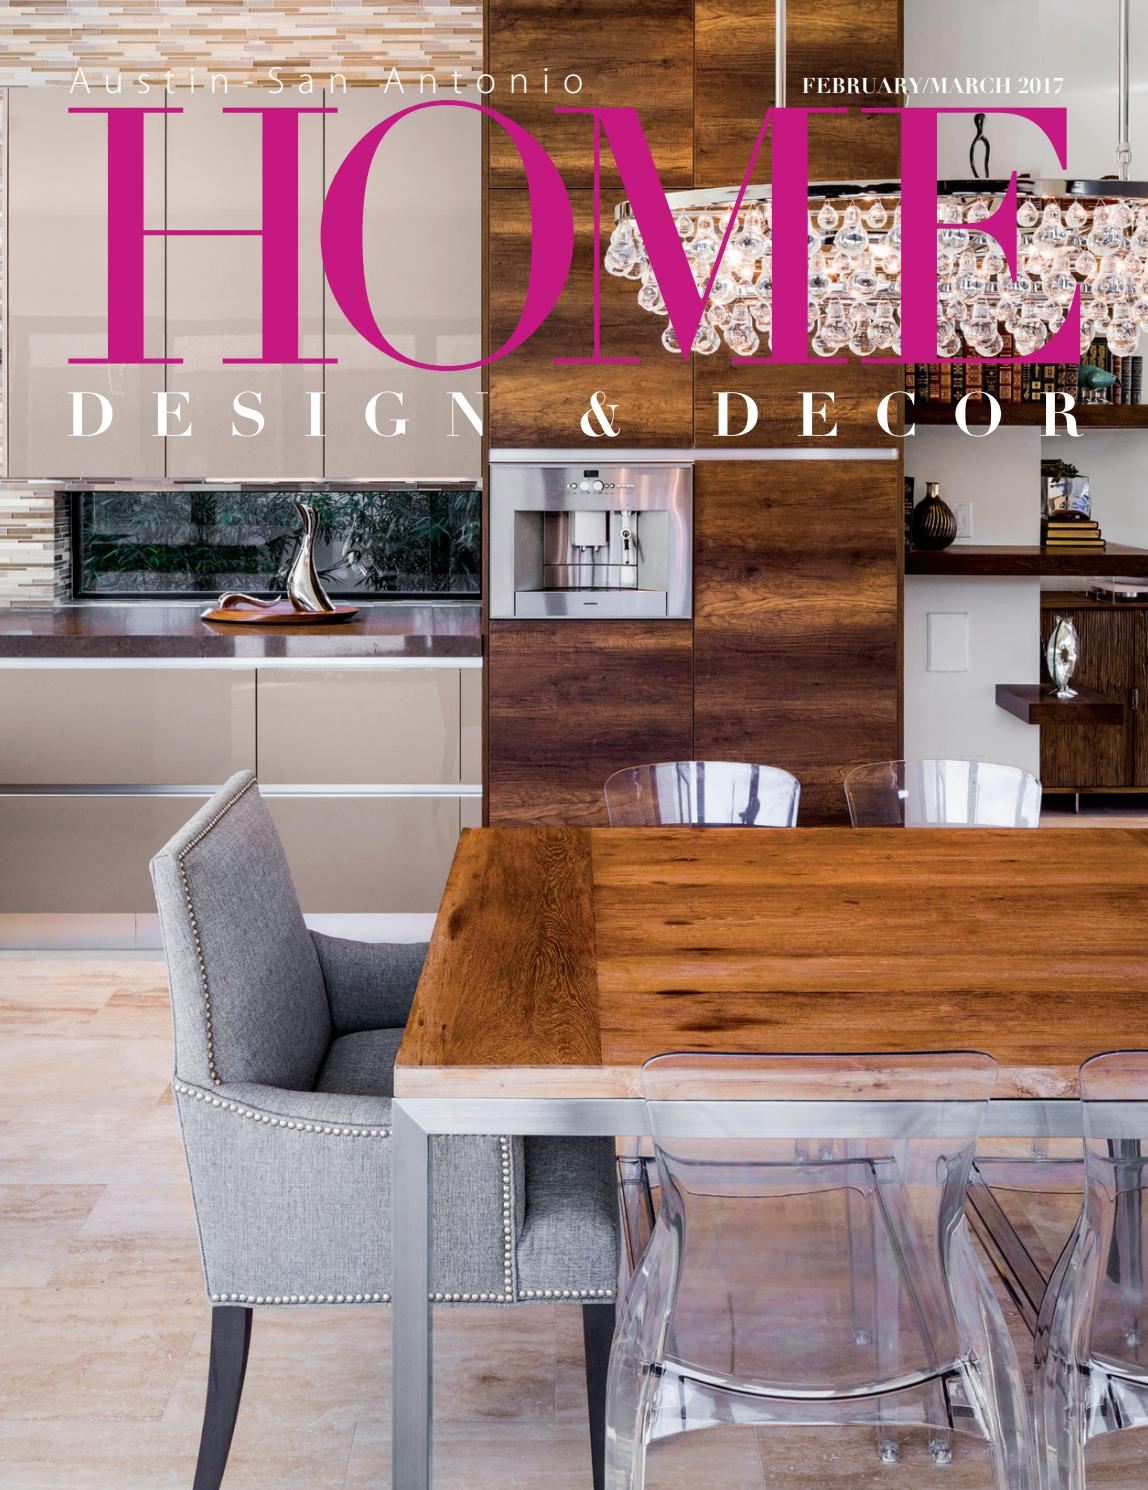 Home Design Decor Austin San Antonio February March 2017 By Trisha Doucette Issuu